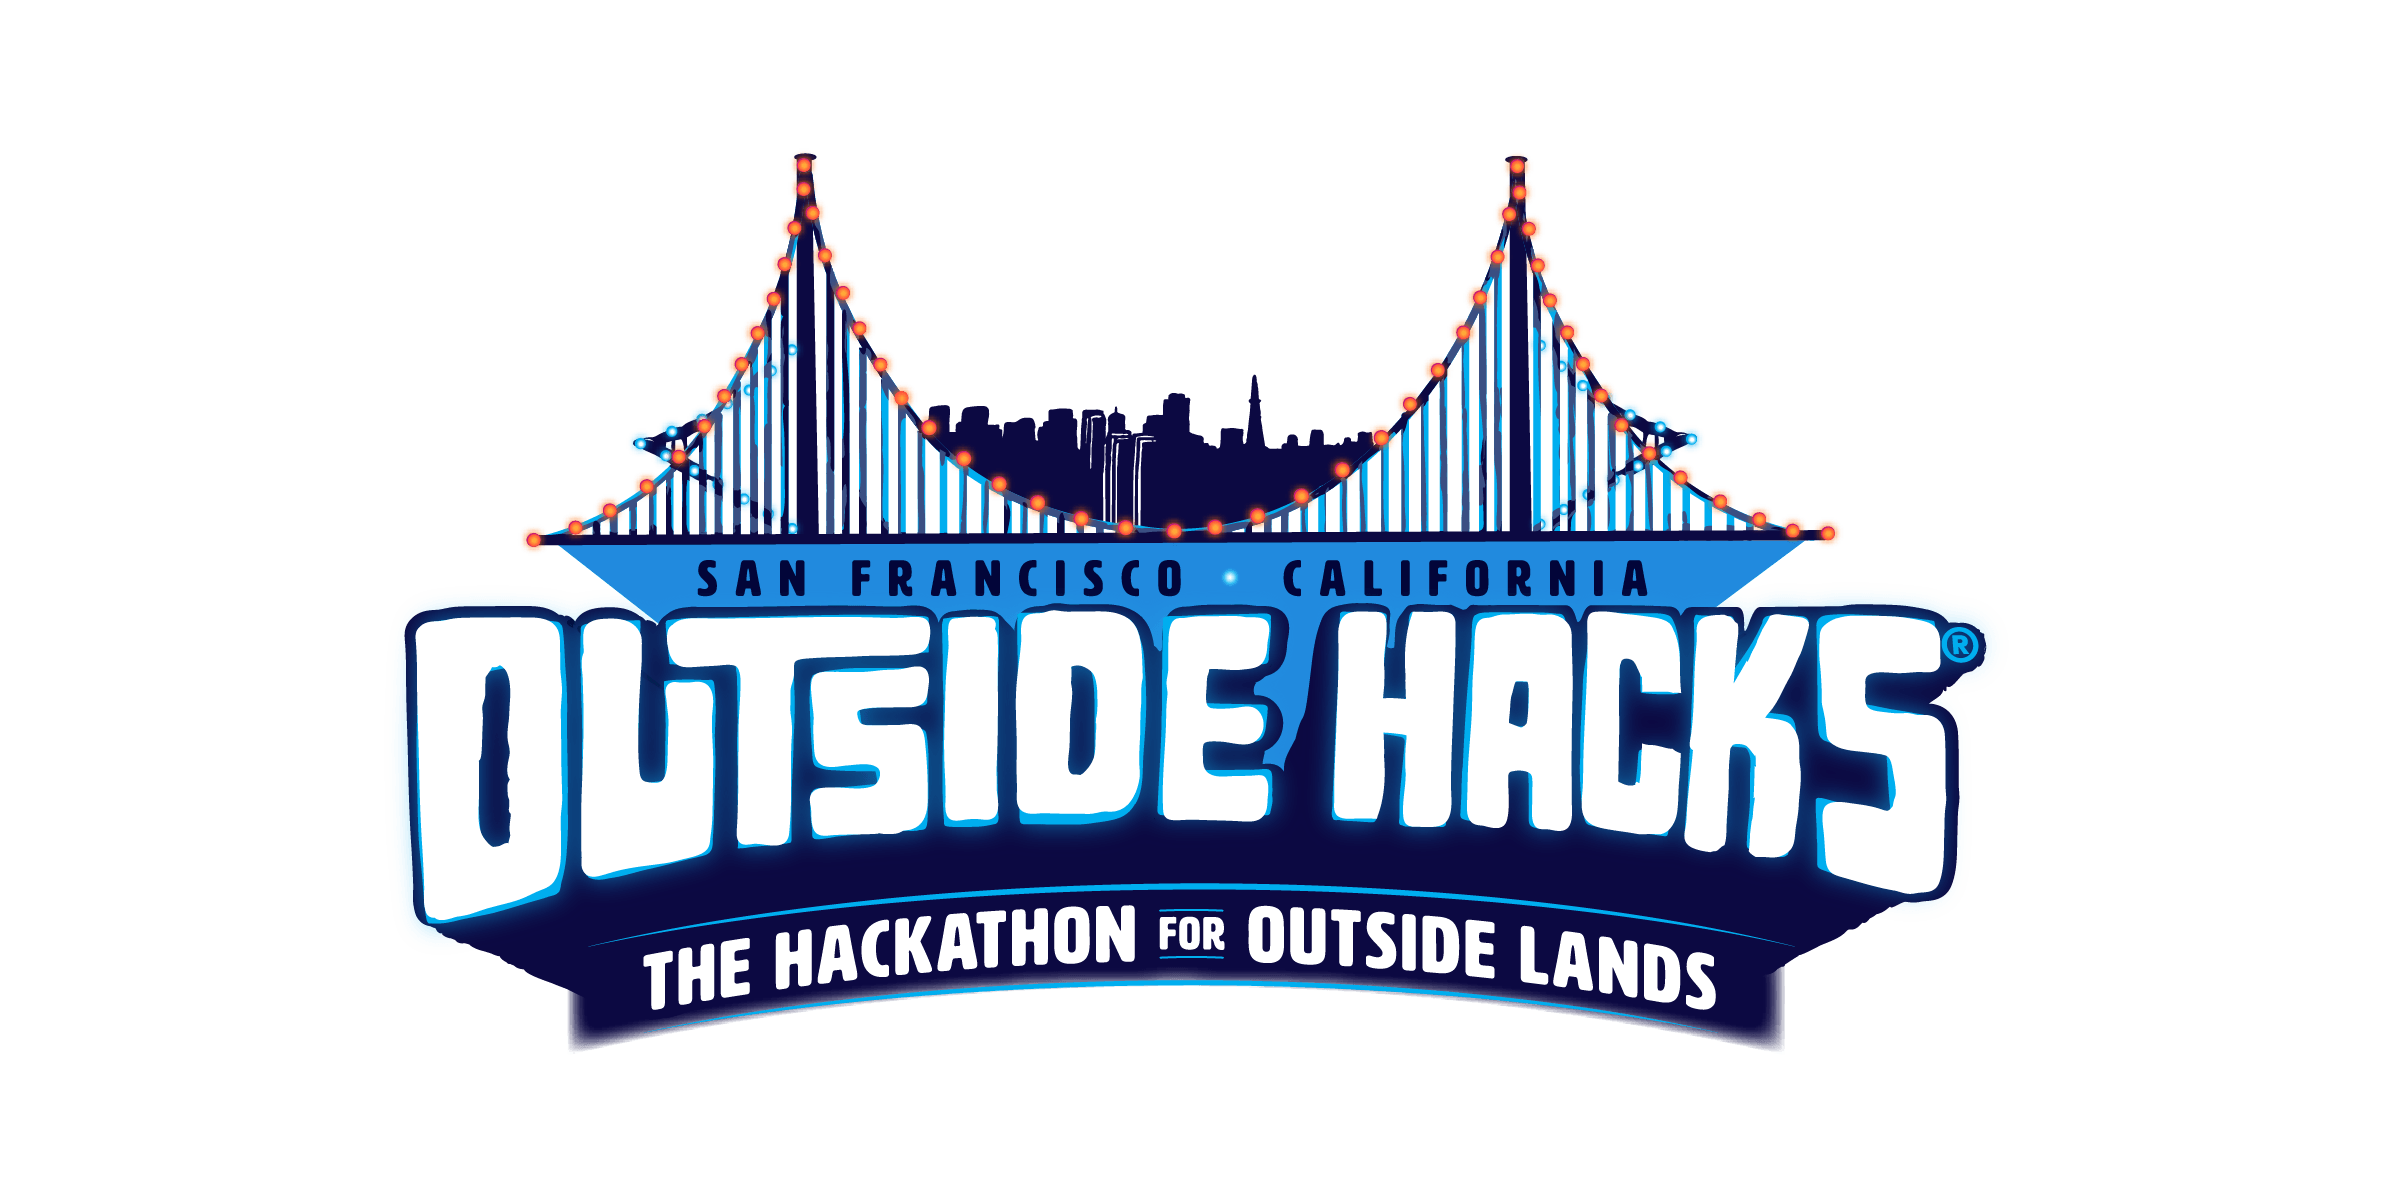 Outside Hacks - Created and produced the official hackathon for Outside Lands Music Festival in San Francisco which became the largest and longest running music hackathon in California